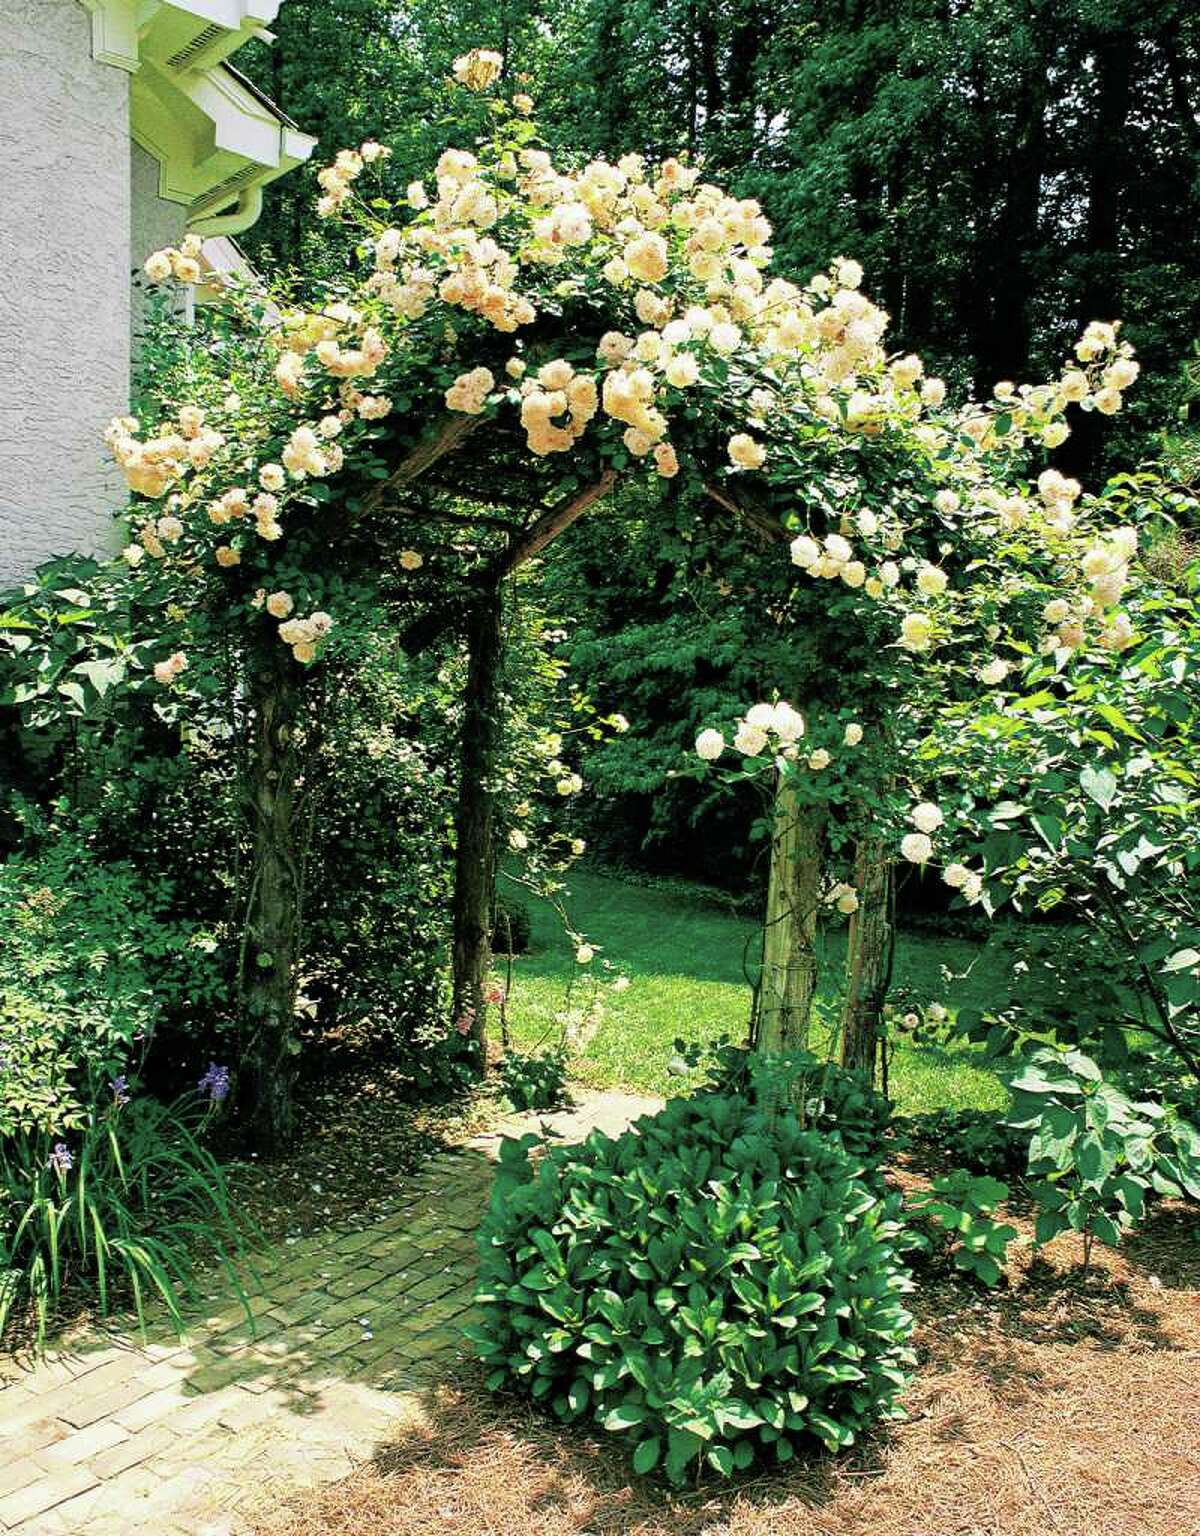 GARDEN UP: Arbors were among the first forms of vertical gardening. This modern-day structure supports a 'Buff Beauty' climbing rose.